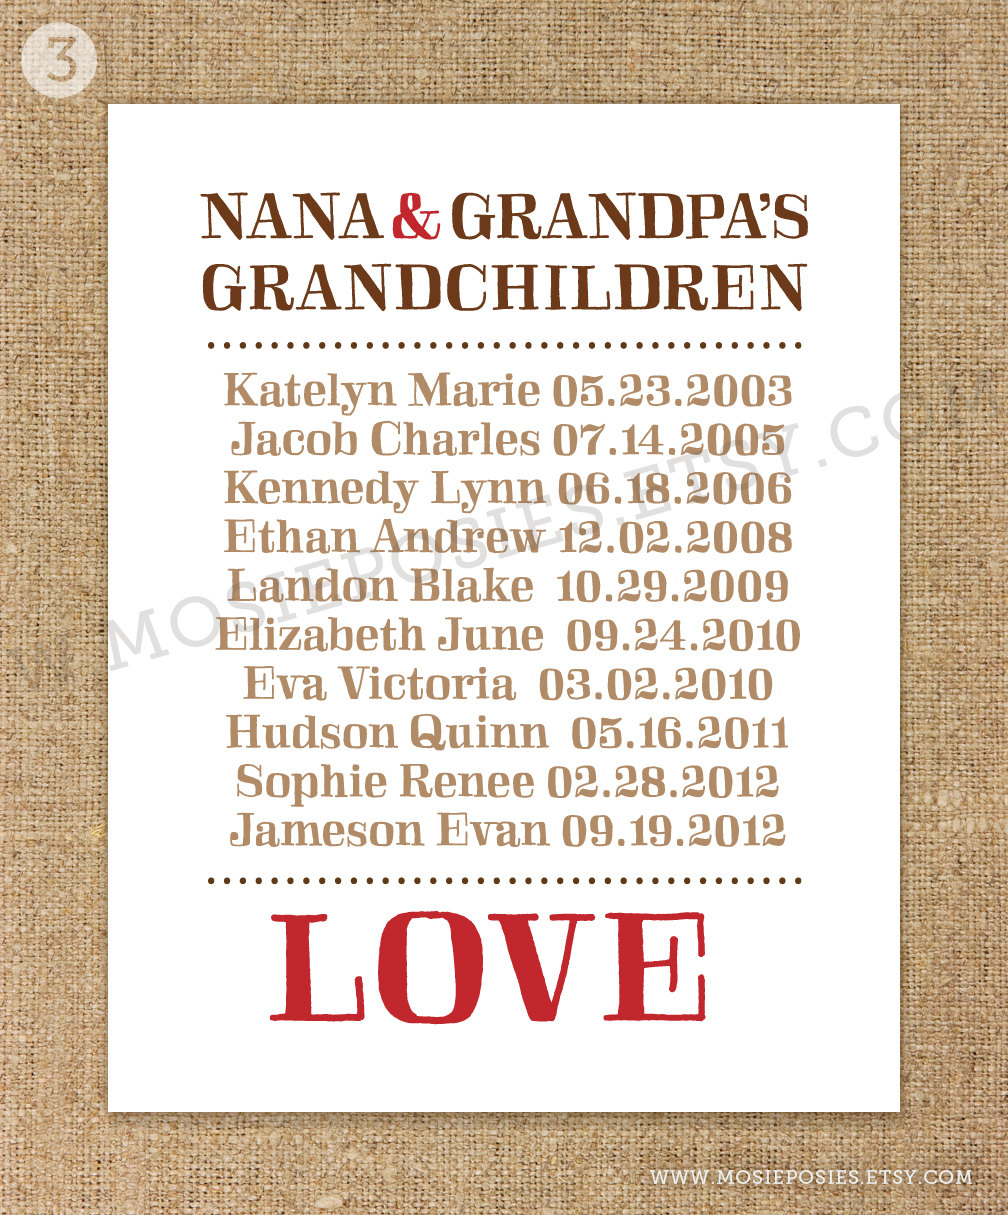 Birthday Wishes For Grandfather | Page 22 | Nicewishes.com